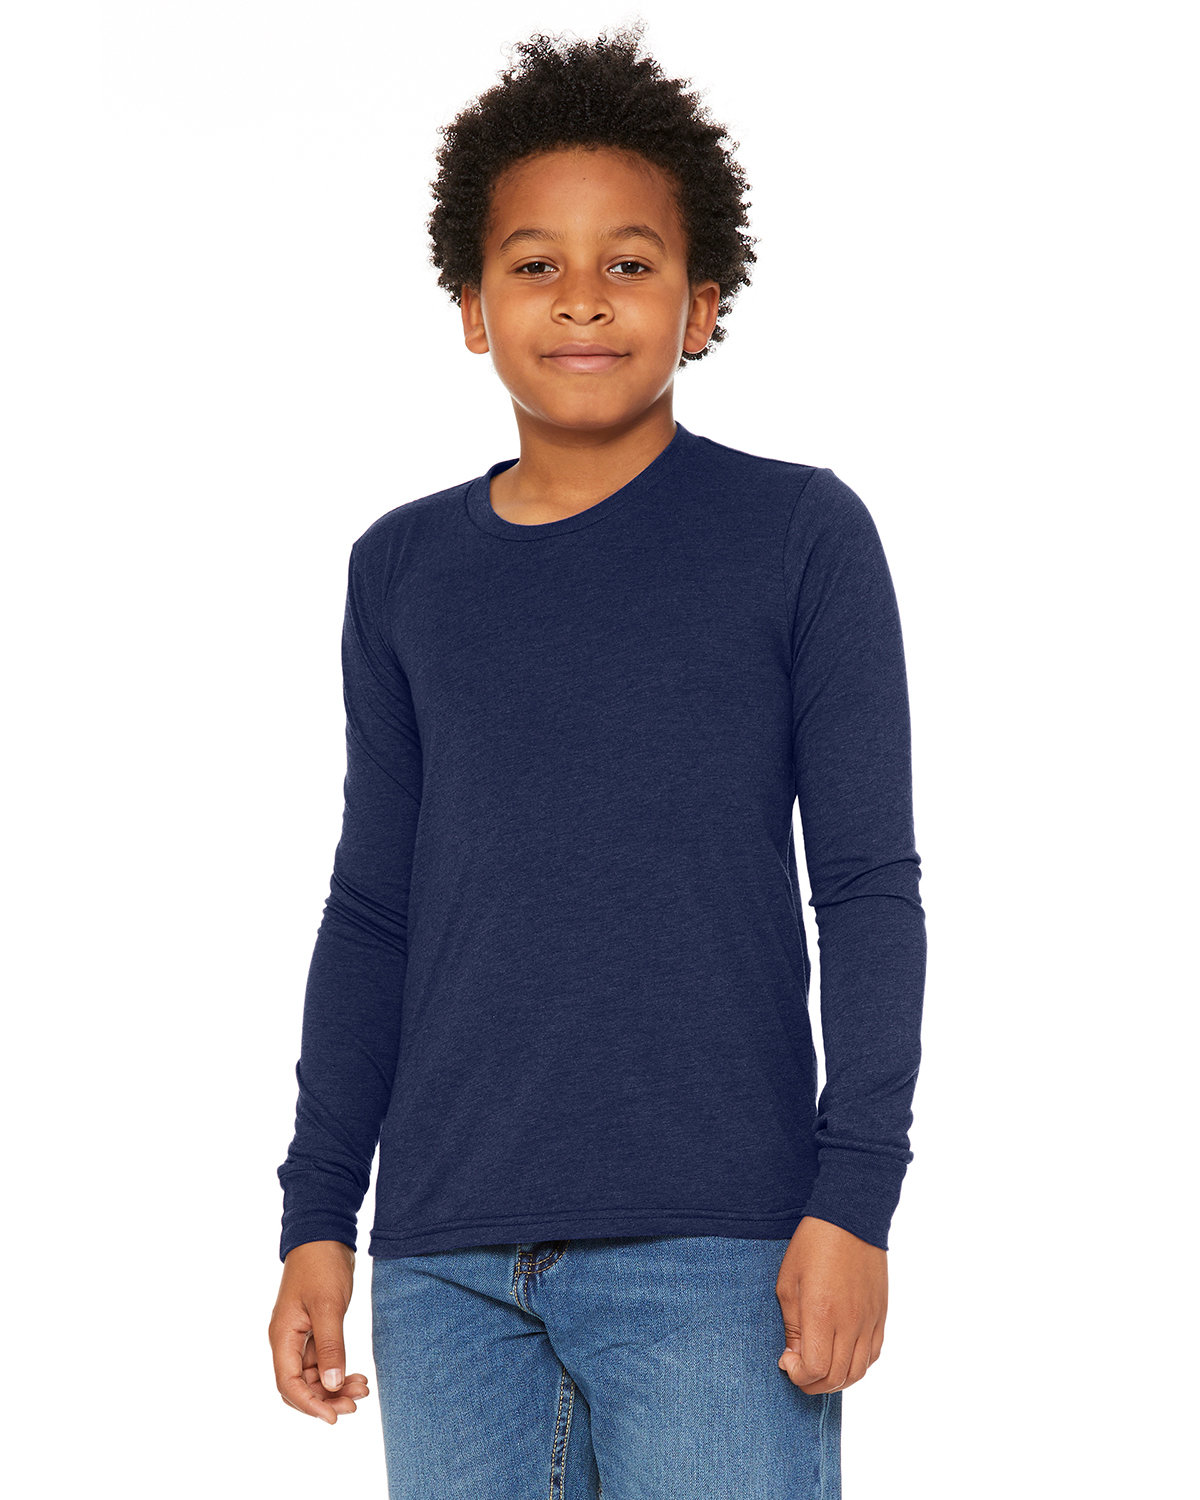 Bella + Canvas Youth Jersey Long-Sleeve T-Shirt NAVY TRIBLEND